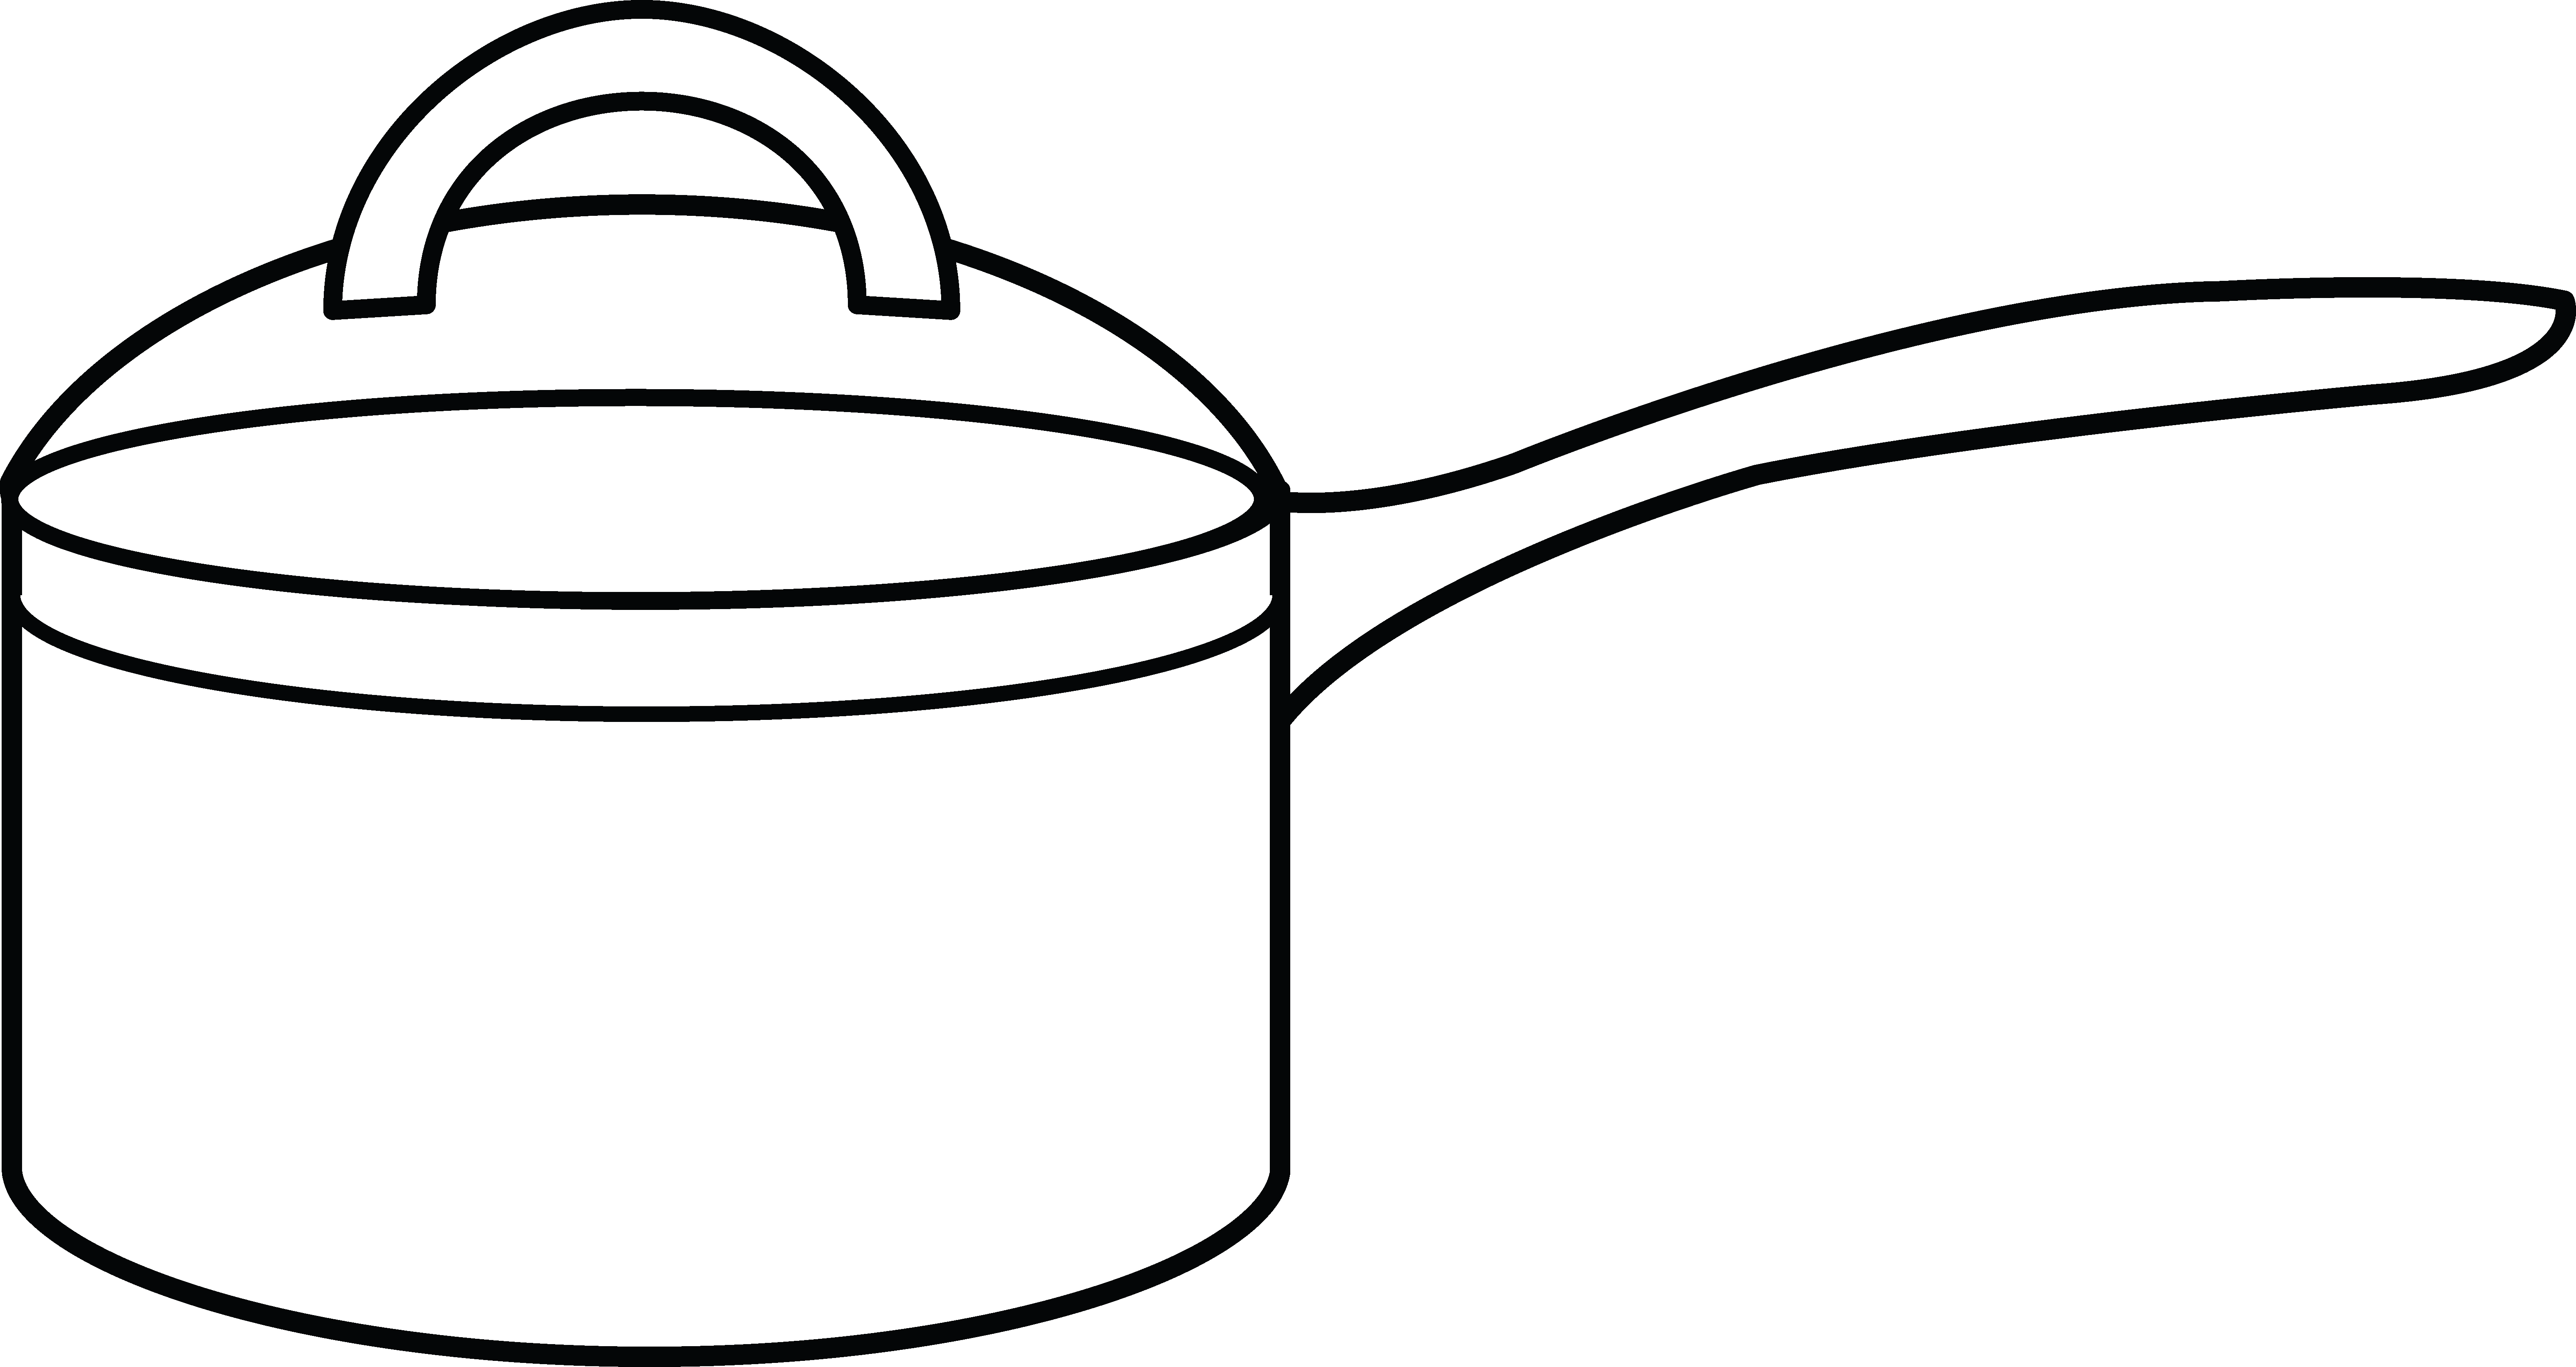 Lips clipart kiss the cook. Cooking pot coloring page